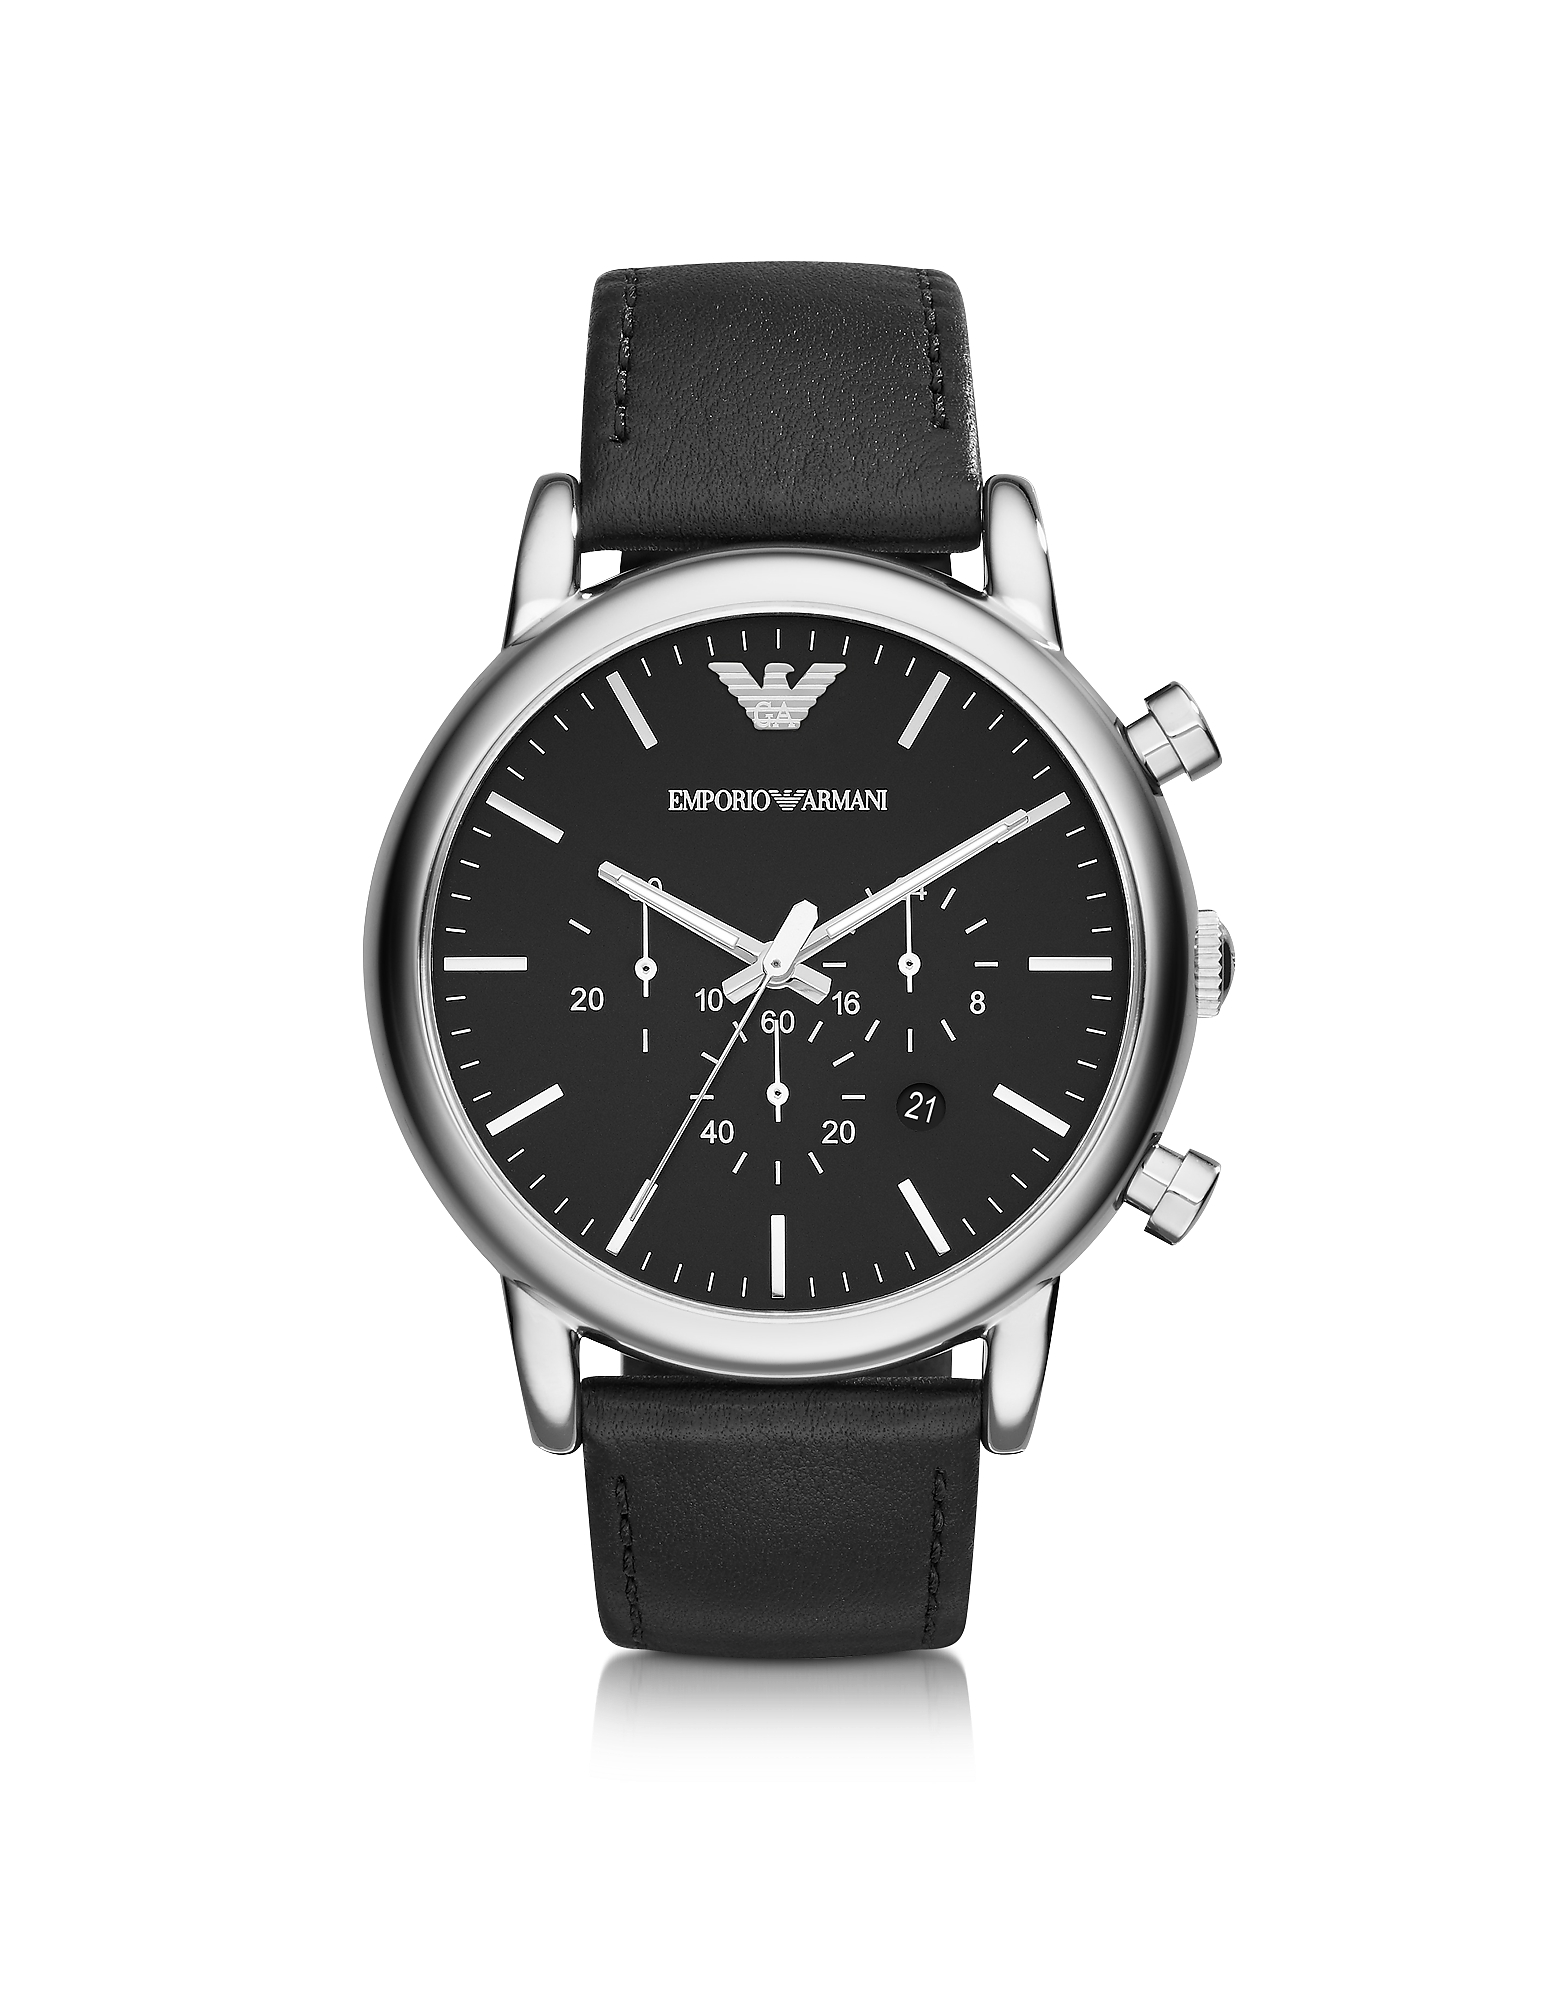 Emporio Armani Men's Watches, Silver Tone Stainless Steel & Black Leather Strap Men's Watch